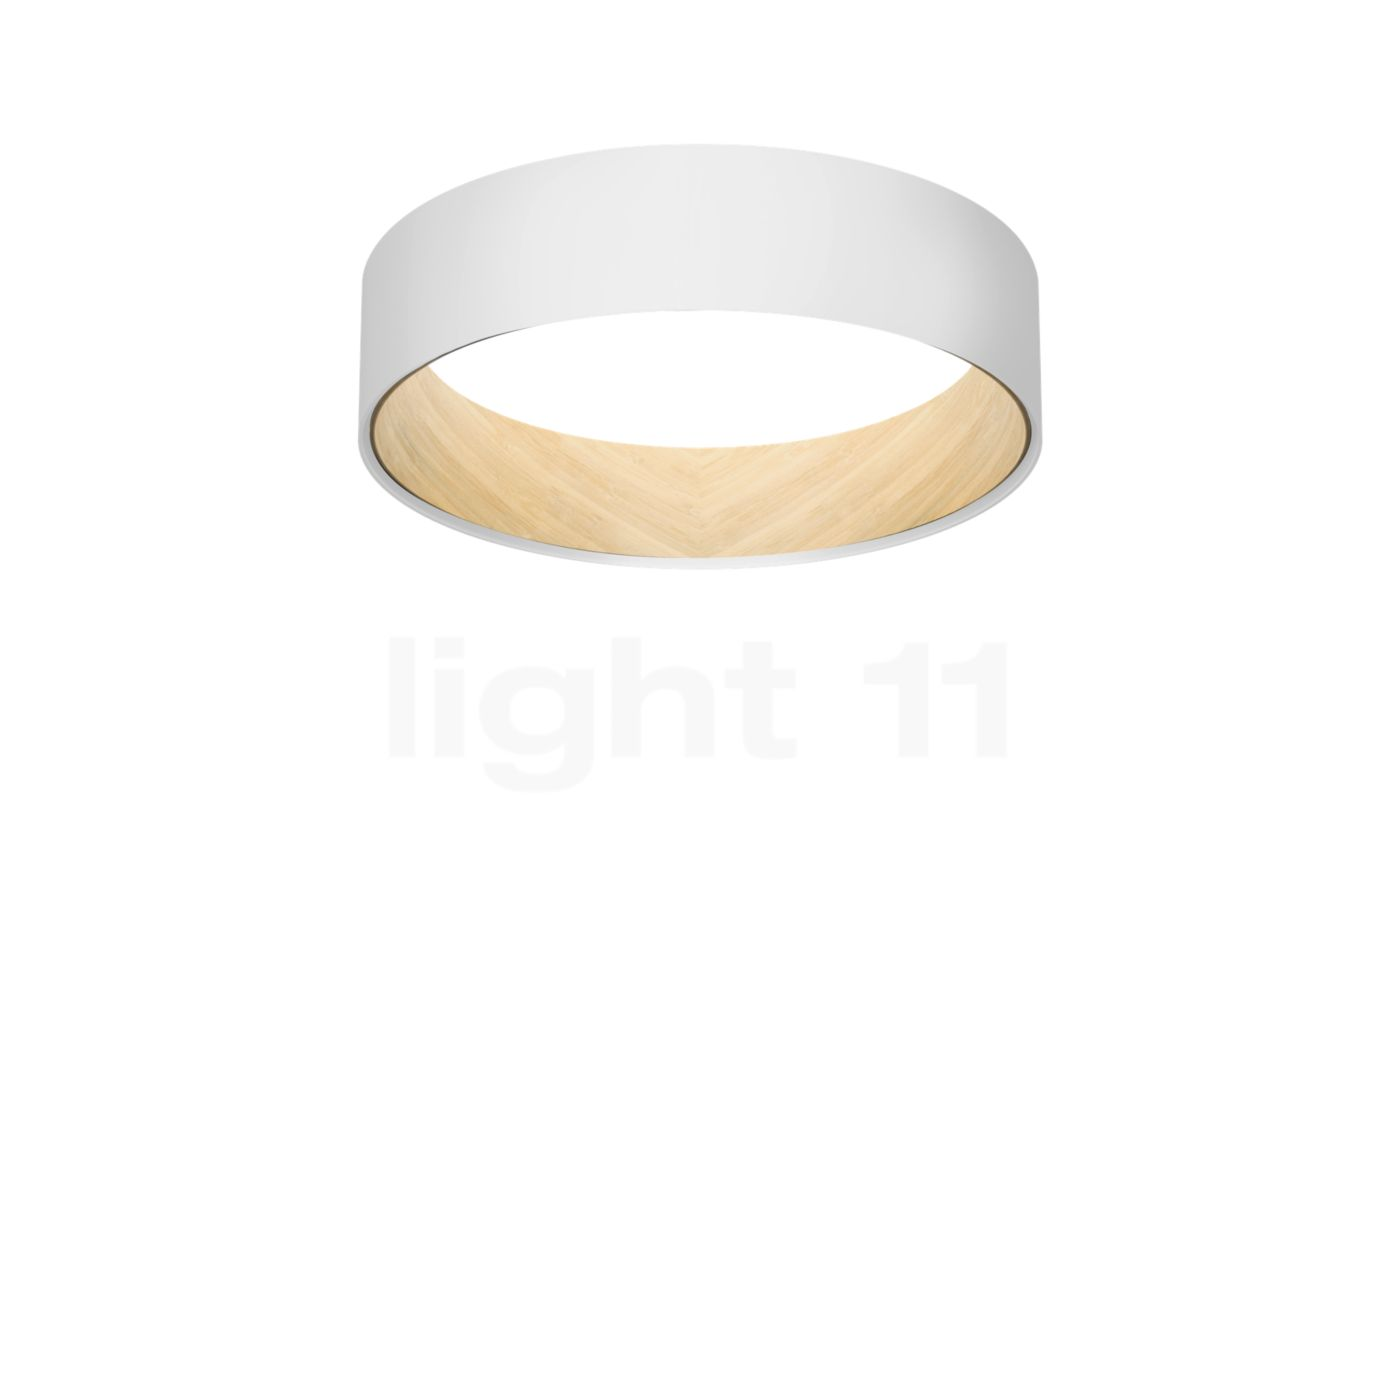 Led White Buy Vibia Duo Ceiling Light Ring Led At Light11 Eu